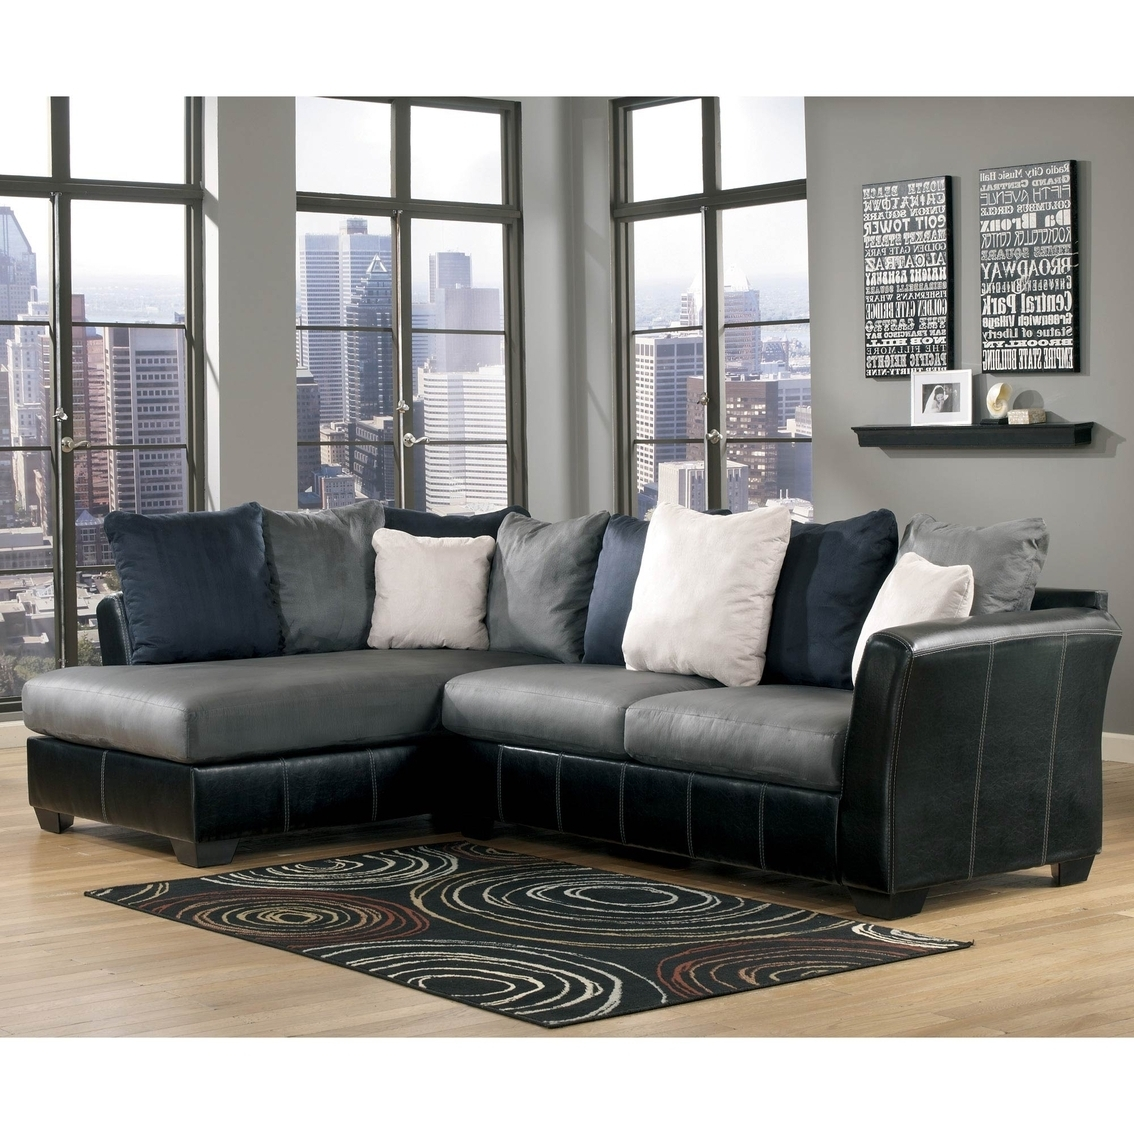 Ottawa Sectional Sofas In Favorite Ashley Sectional Sofa With Chaise – Hotelsbacau (View 11 of 15)